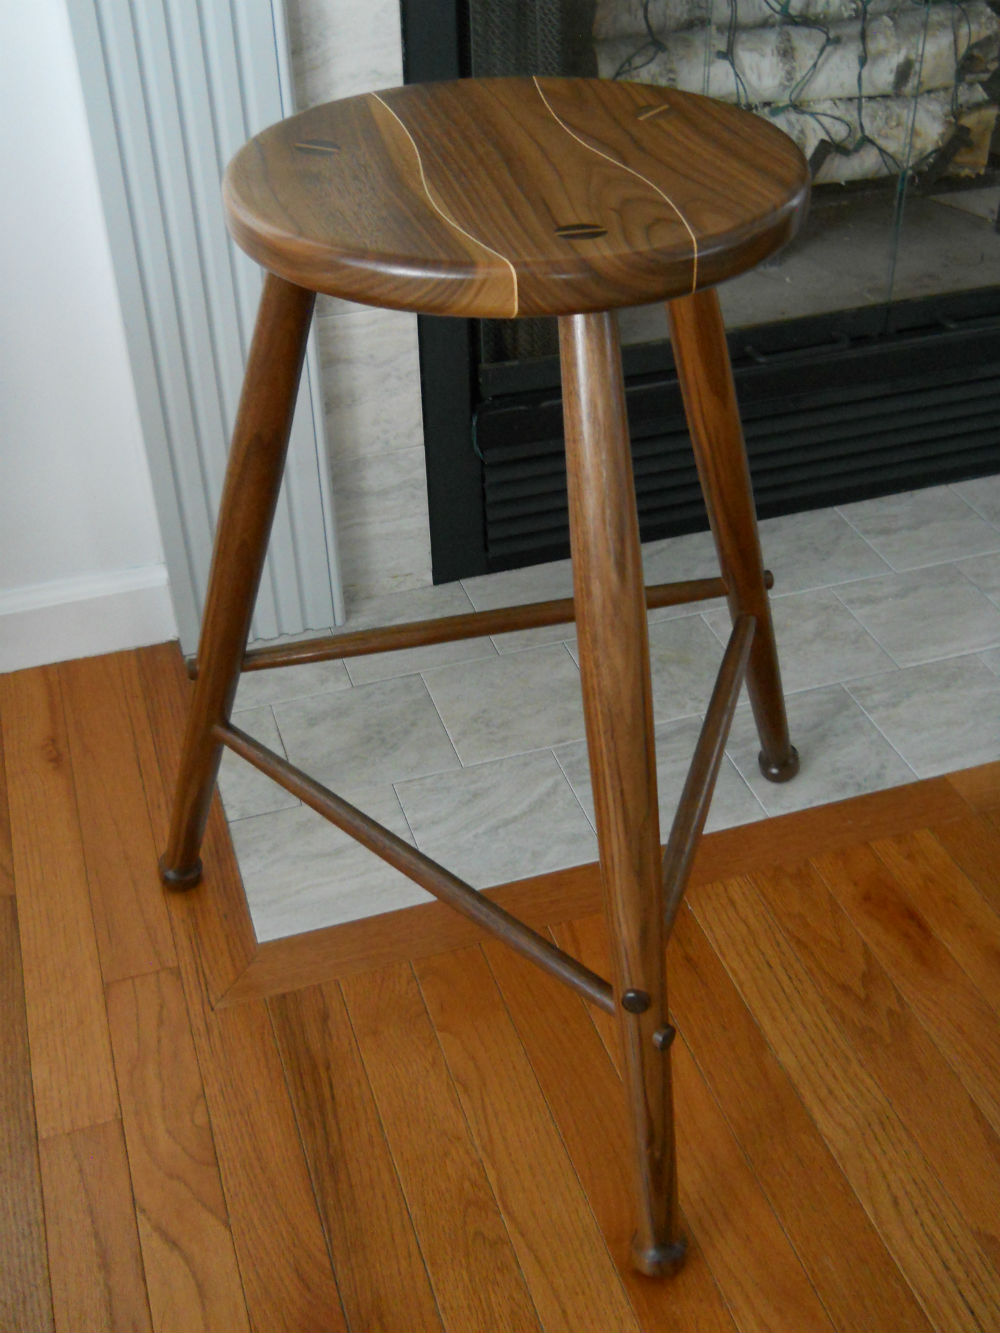 Project: Three Legged Stool